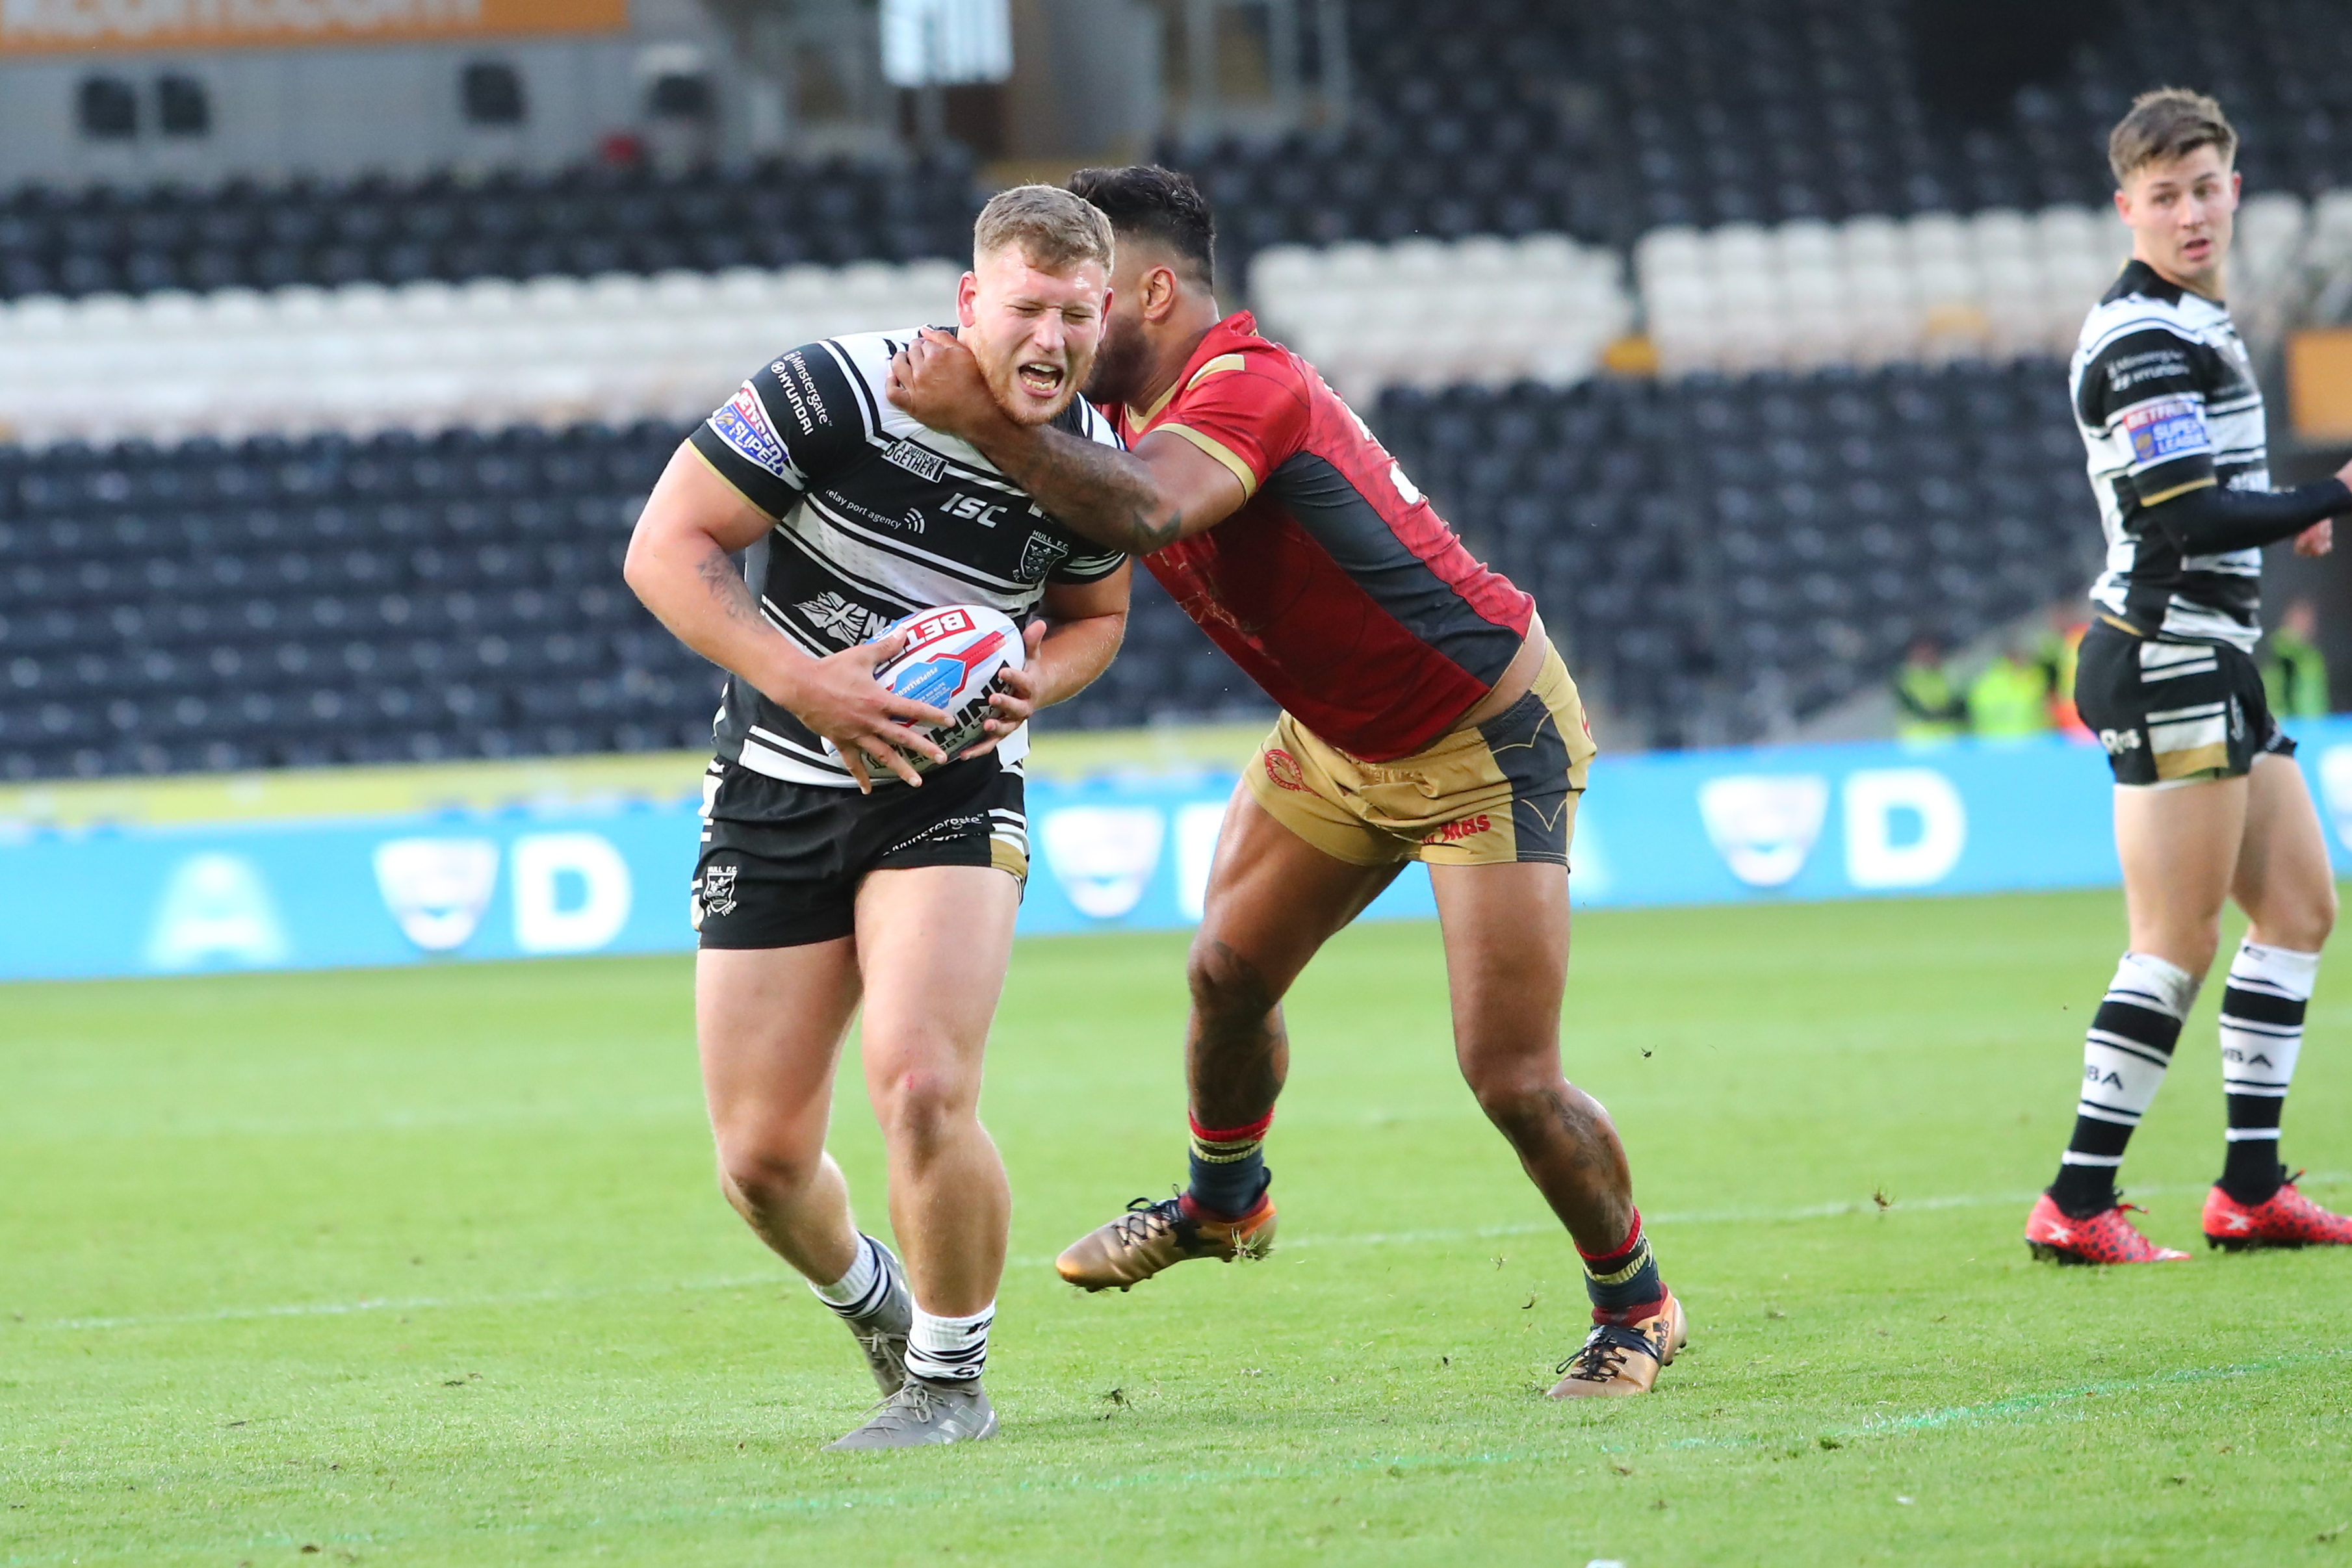 4a0d9798d9f 19-year old prop Lewis Bienek originally signed for the Black & Whites from  the 2019 season back in March, but was called up into the first-team squad  ...